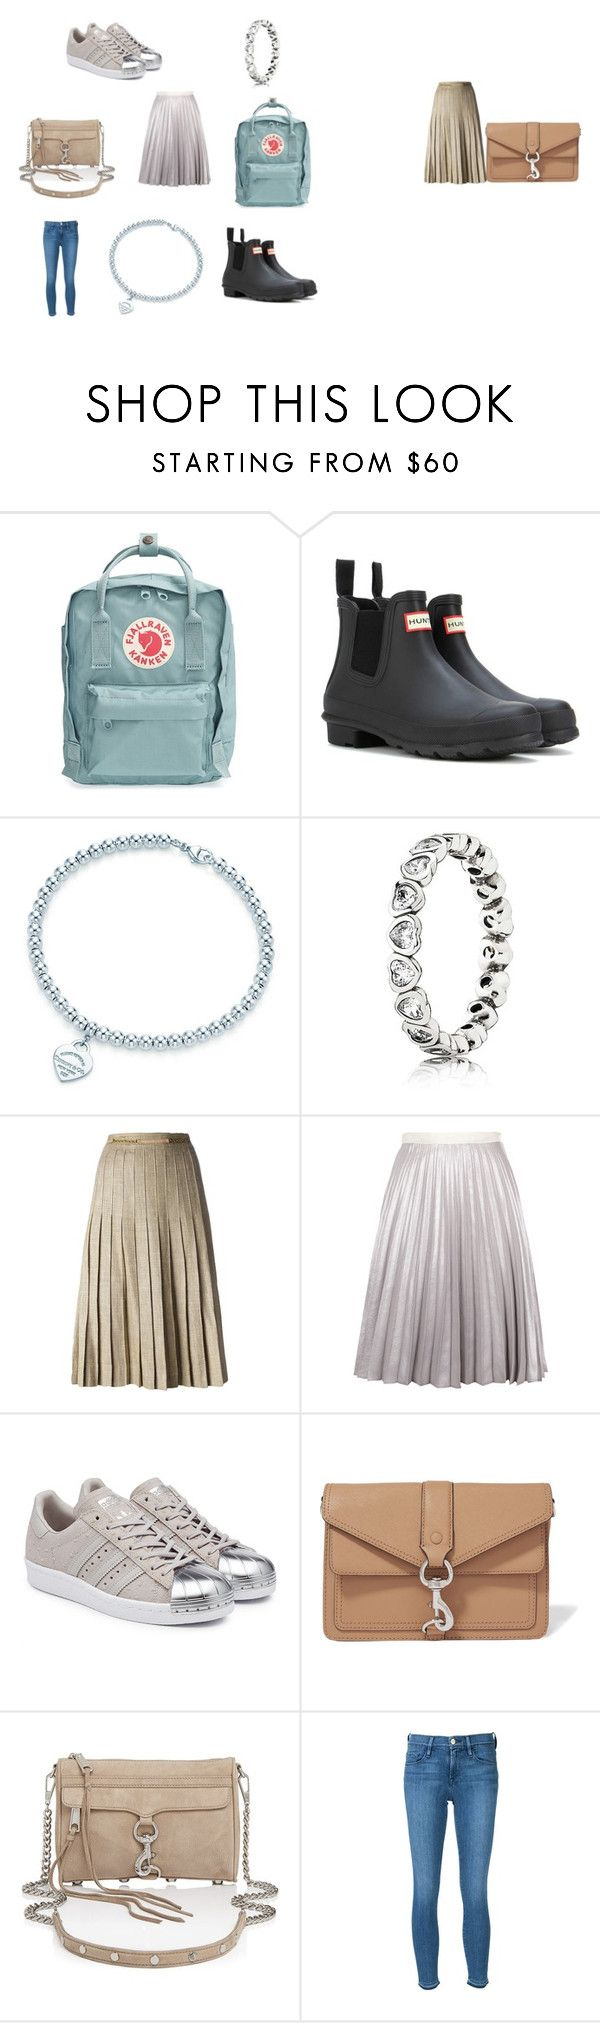 """Untitled #5"" by claudia308 on Polyvore featuring Fjällräven, Hunter, Tiffany & Co., CÉLINE, Antipodium, adidas Originals, Rebecca Minkoff and Frame"